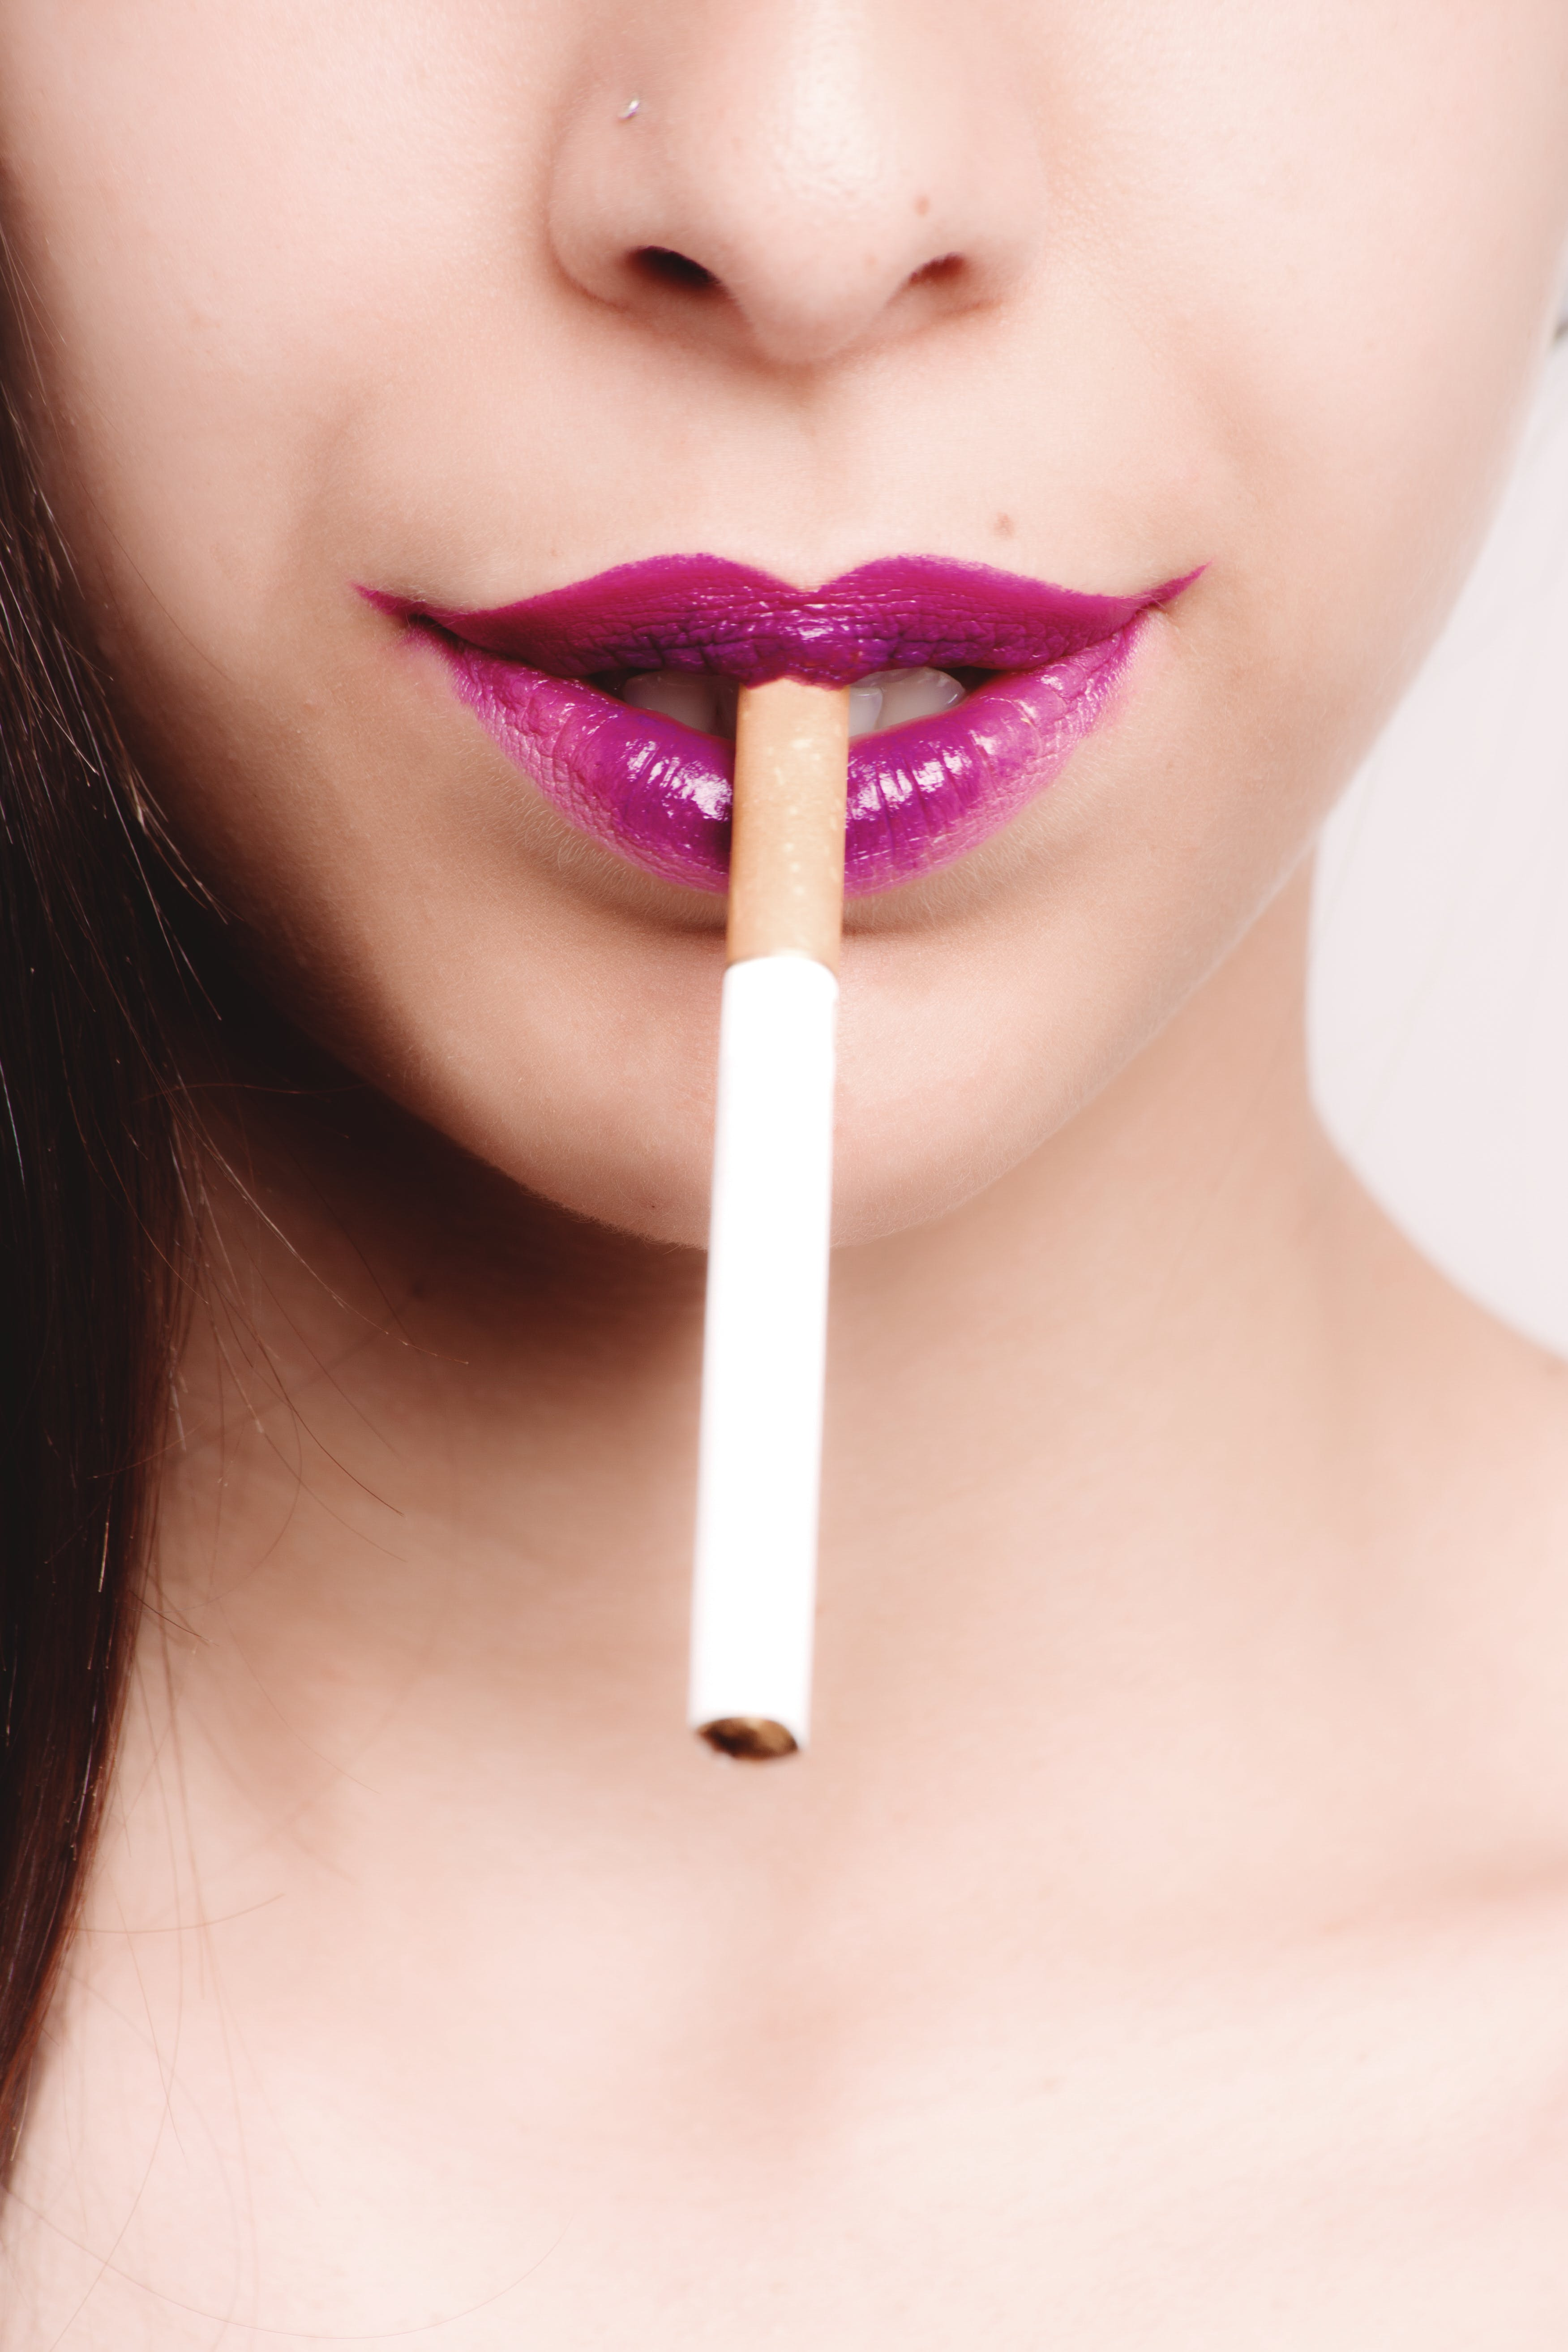 White Cigarette Stick on Woman's Mouth